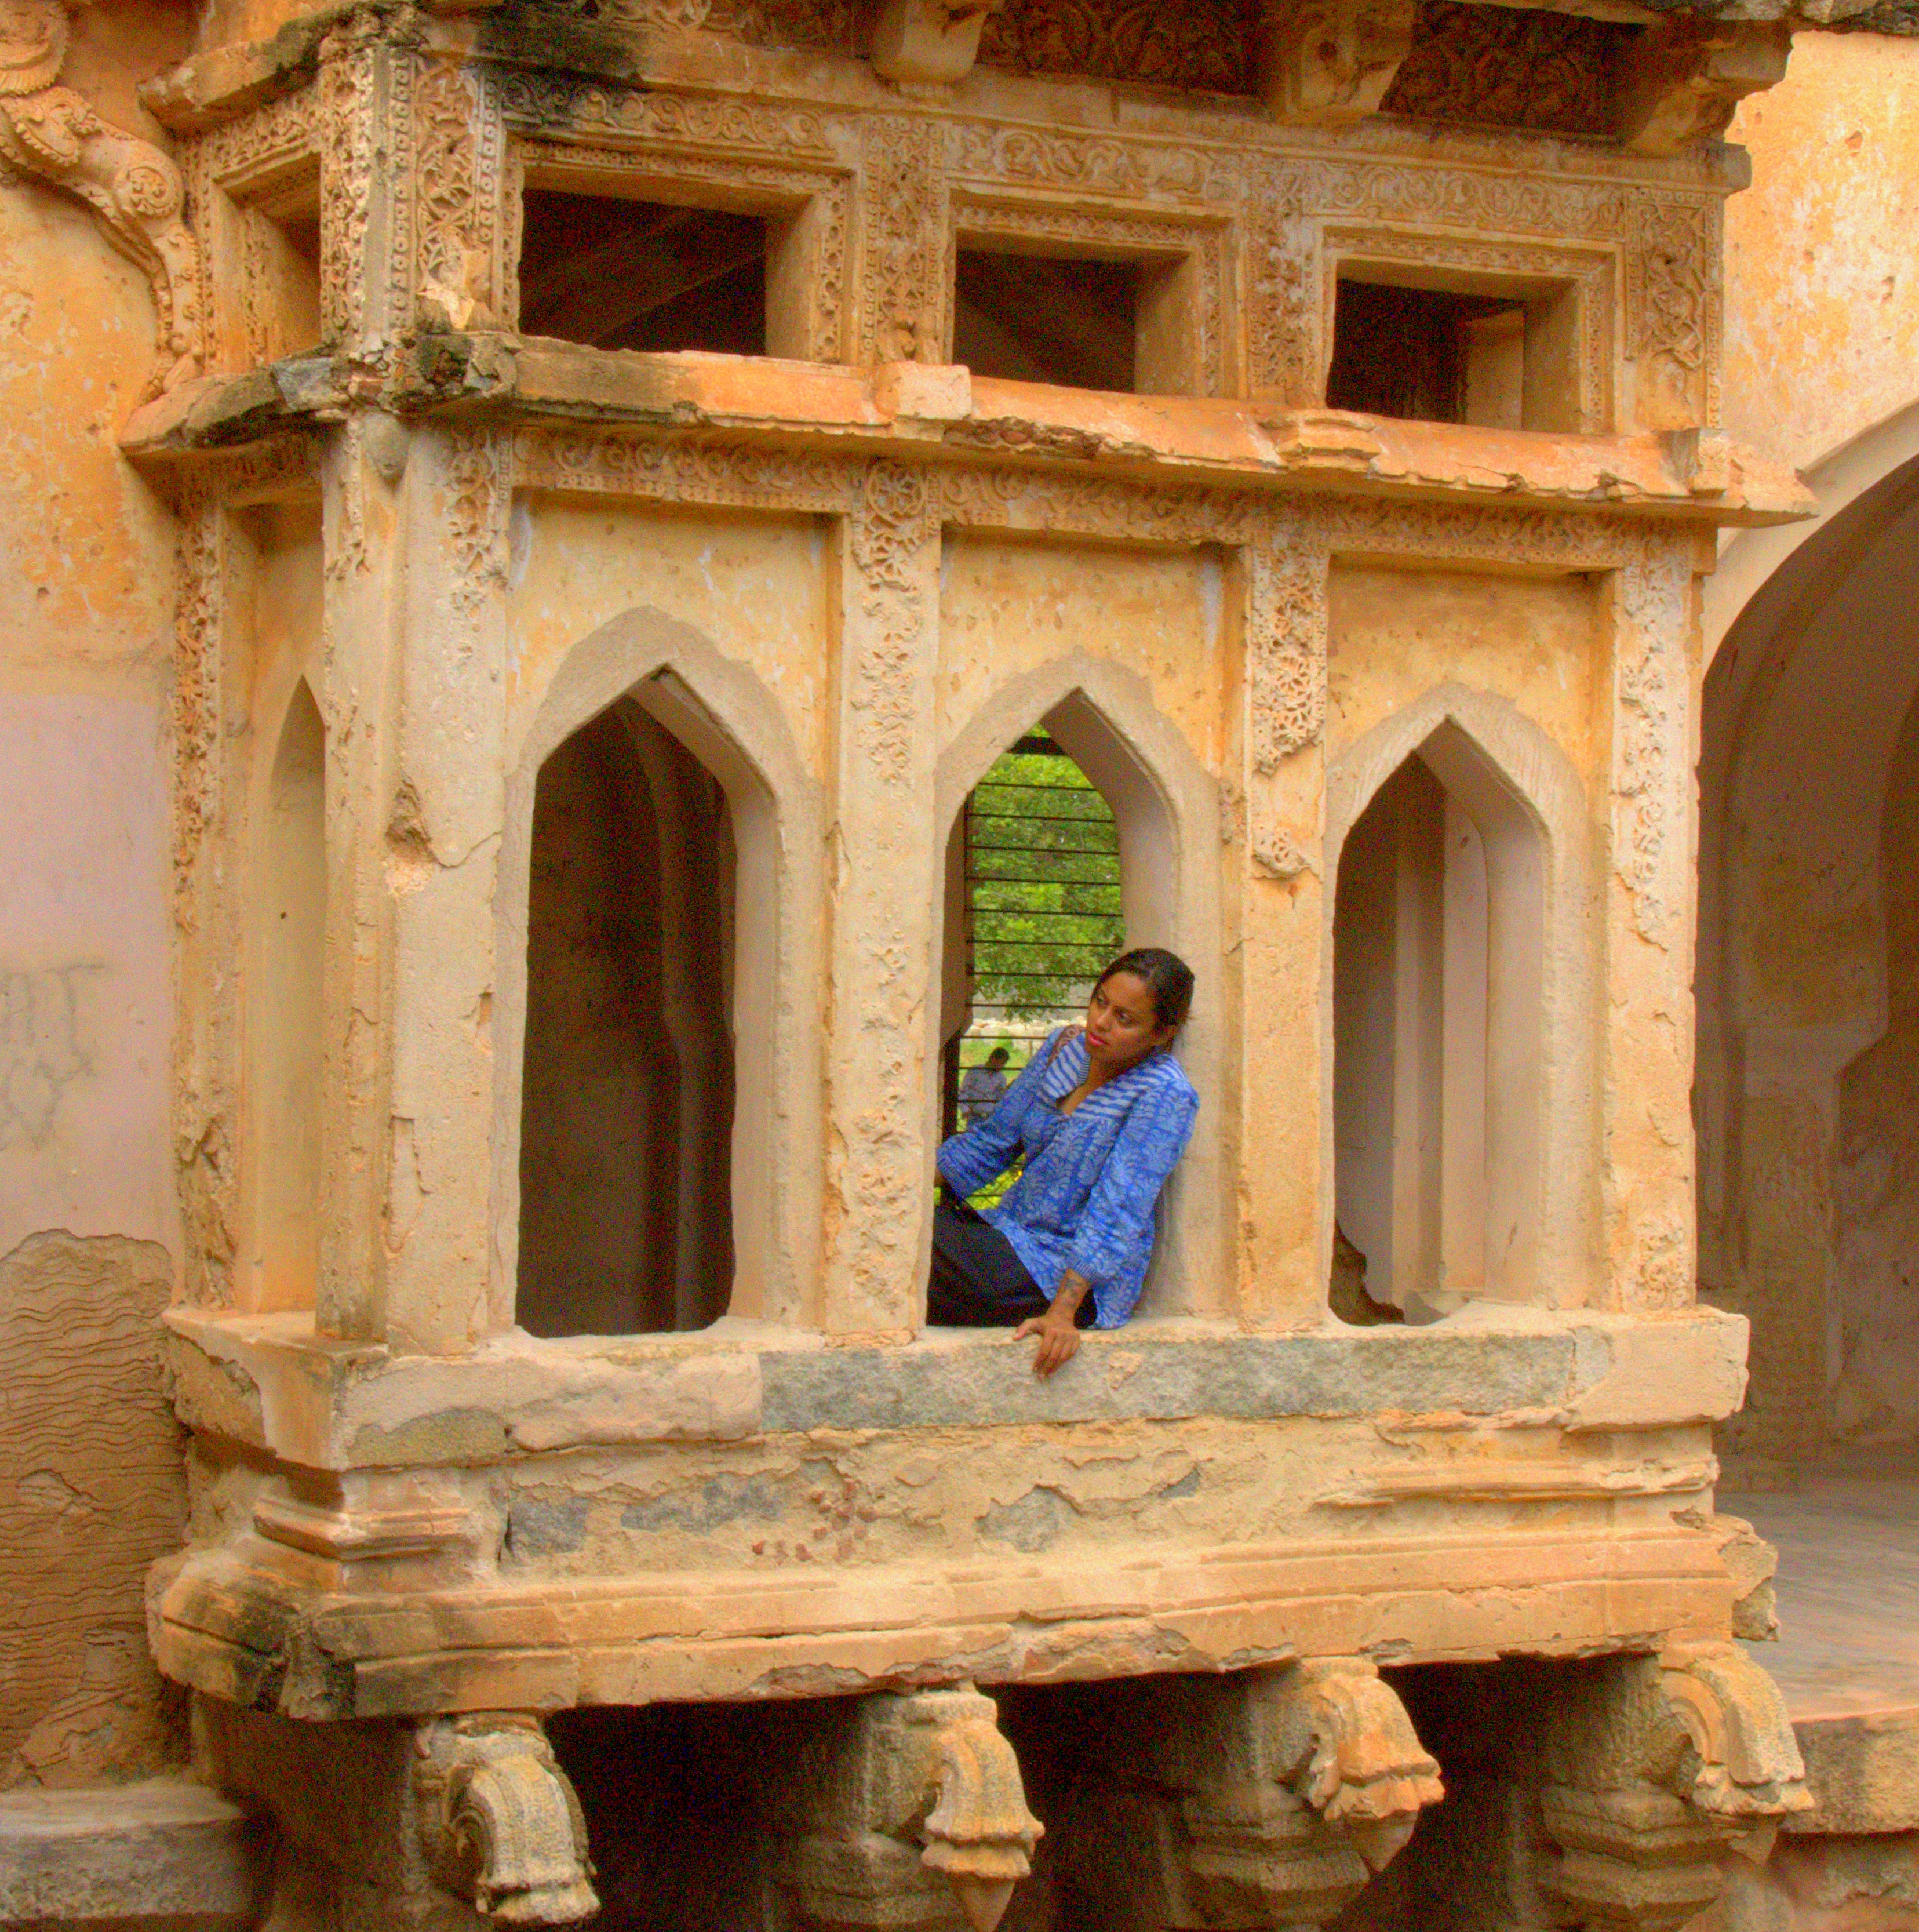 Queen's Bath is must visit spot of the Hampi Royal Enclosures trail